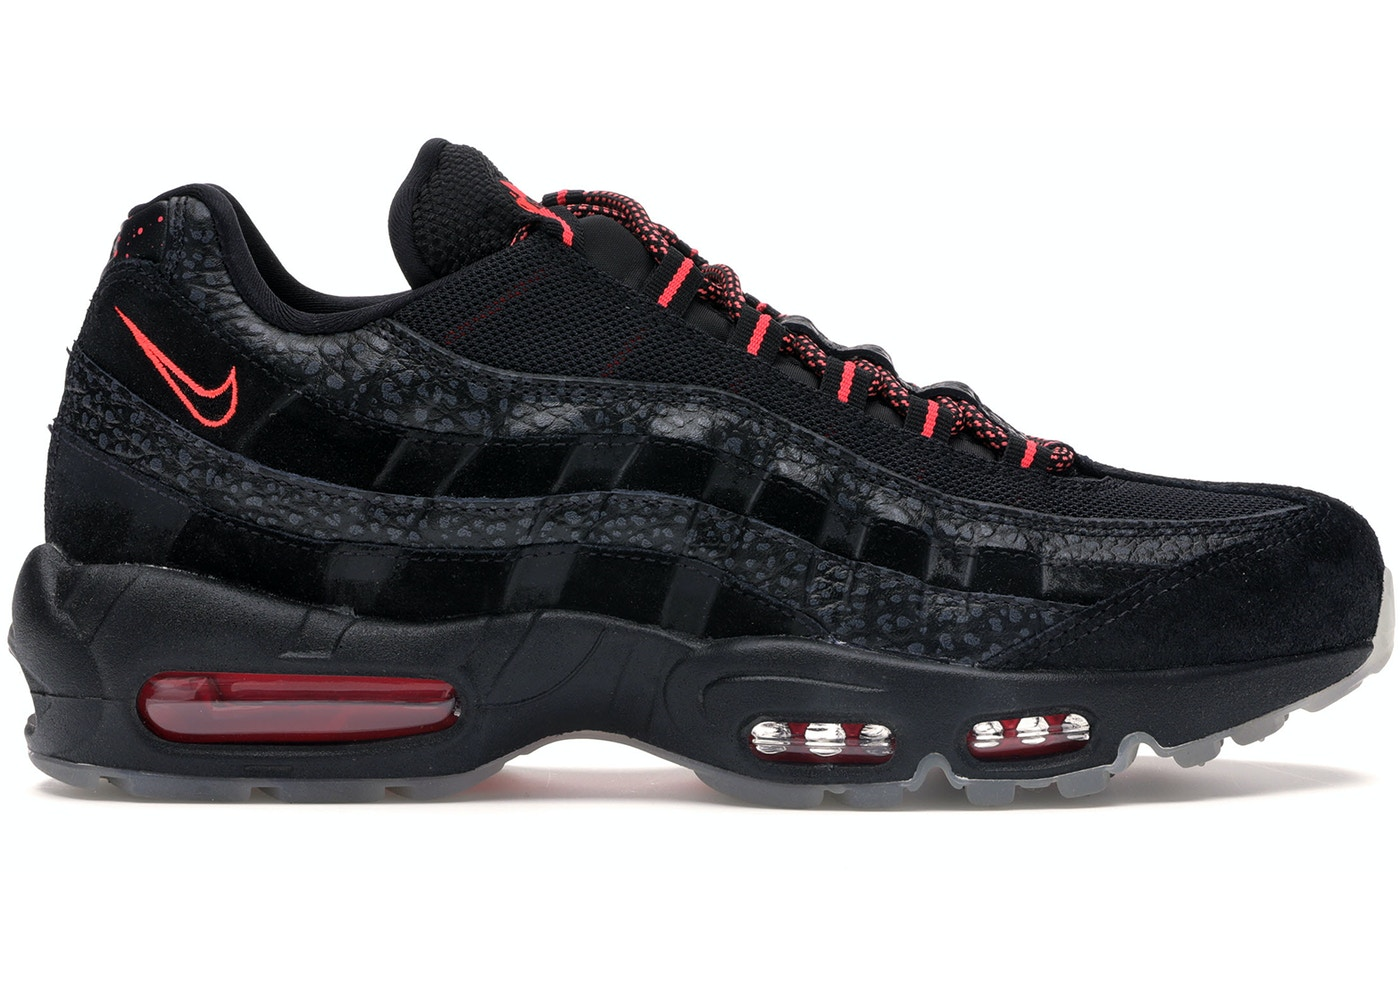 mieux aimé b7310 82ce2 Air Max 95 Safari Black Infrared